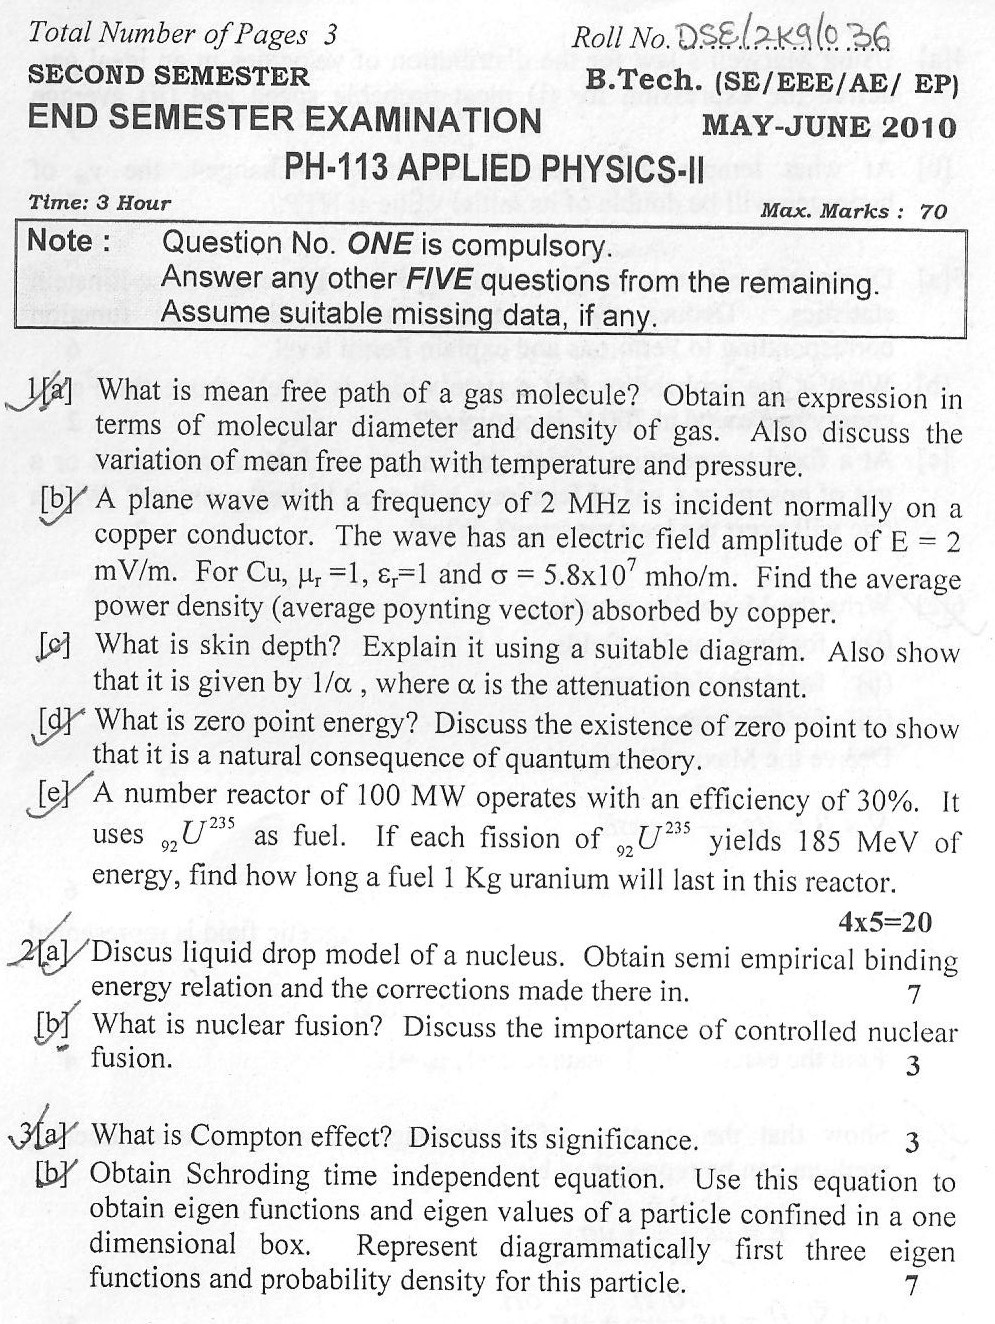 DTU Question Papers 2010 – 2 Semester - End Sem - PH-113